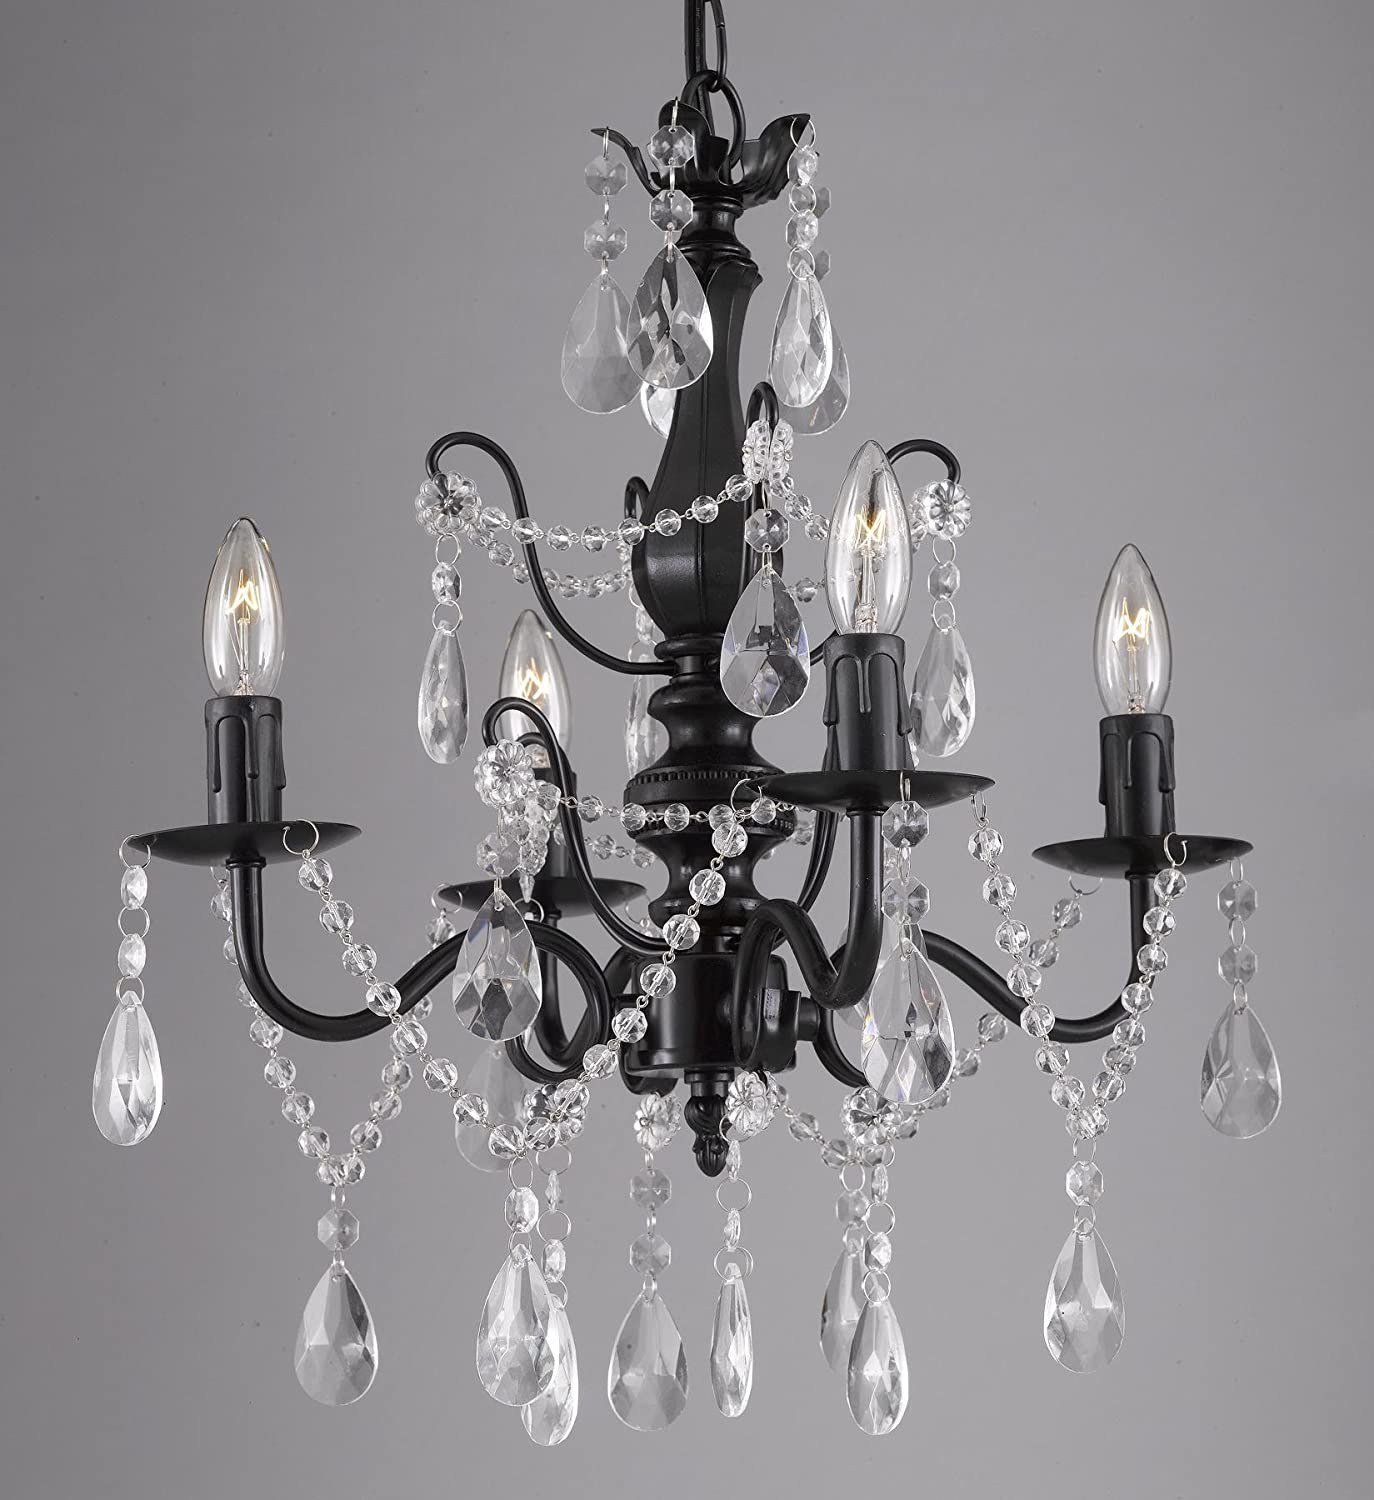 Wrought Iron and Crystal 4 Light Black